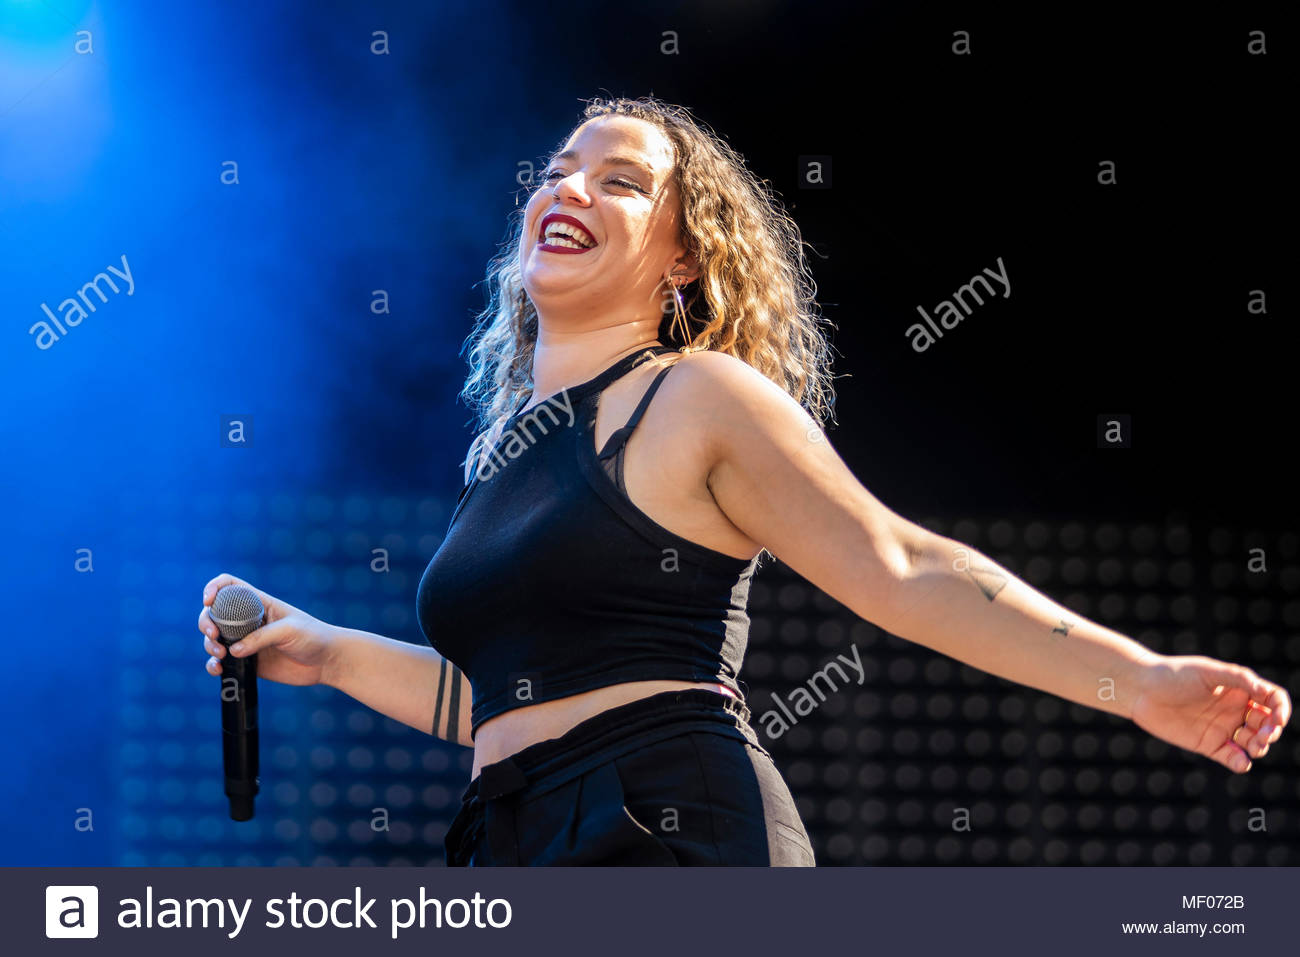 Supa Dupa performing live at the first edition of MUSILAC Mont-Blanc music festival in Chamonix (France) - 20 April 2018 - Stock Image